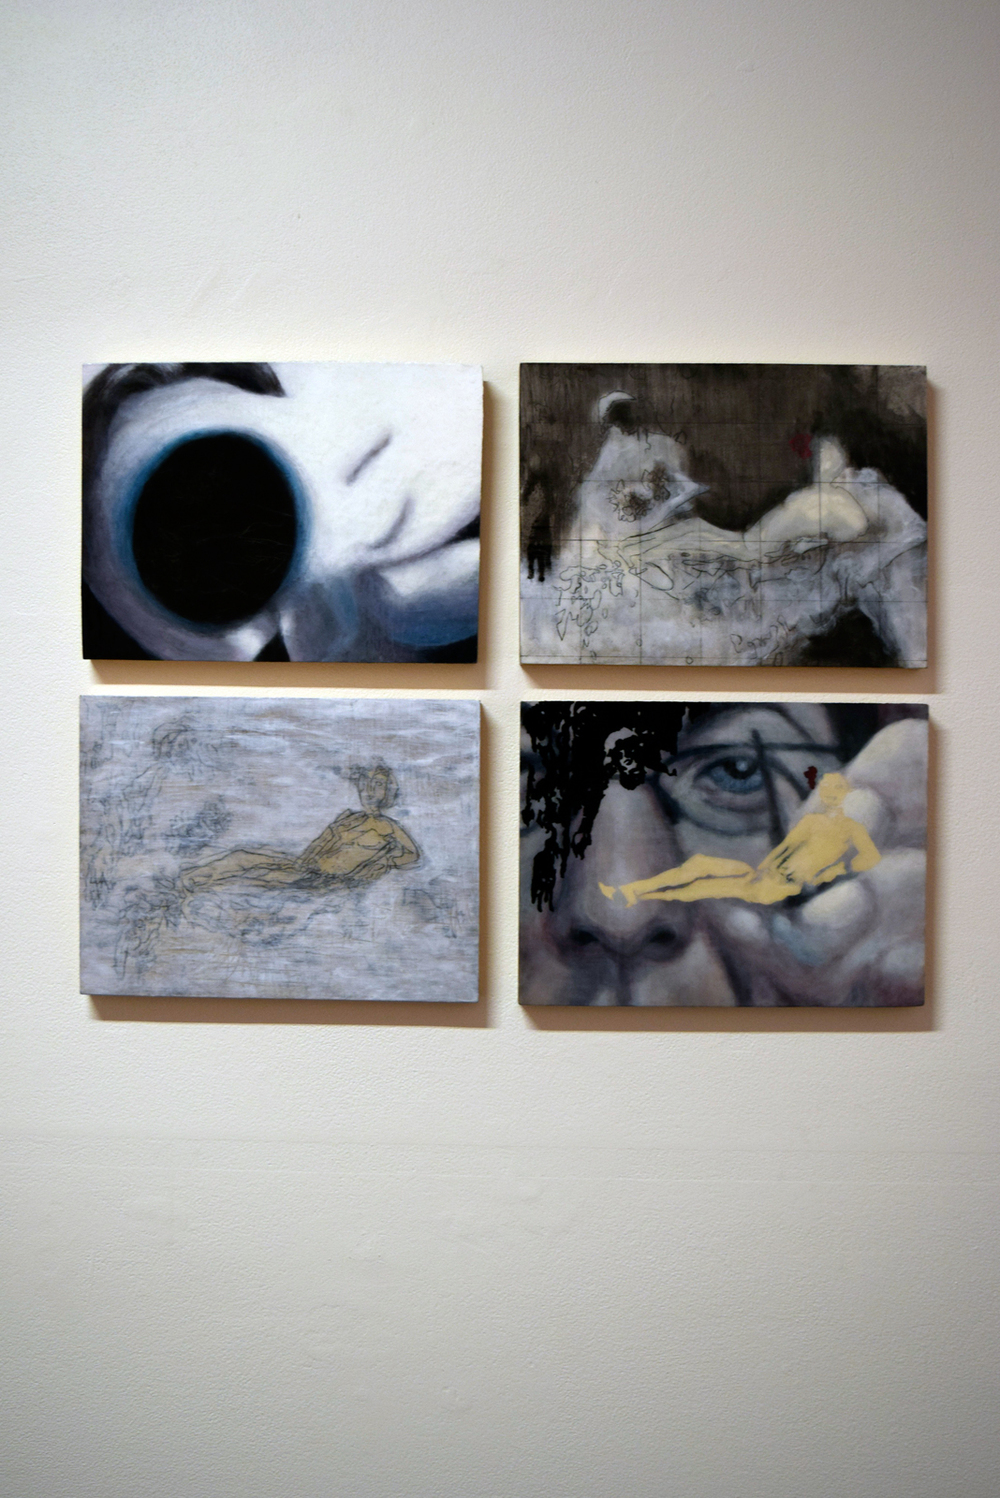 16 - 19.  Olympia Revisited  series, Mel Dare, acrylic, ink, graphite on wooden panel, $600 each or set of 4, $1950